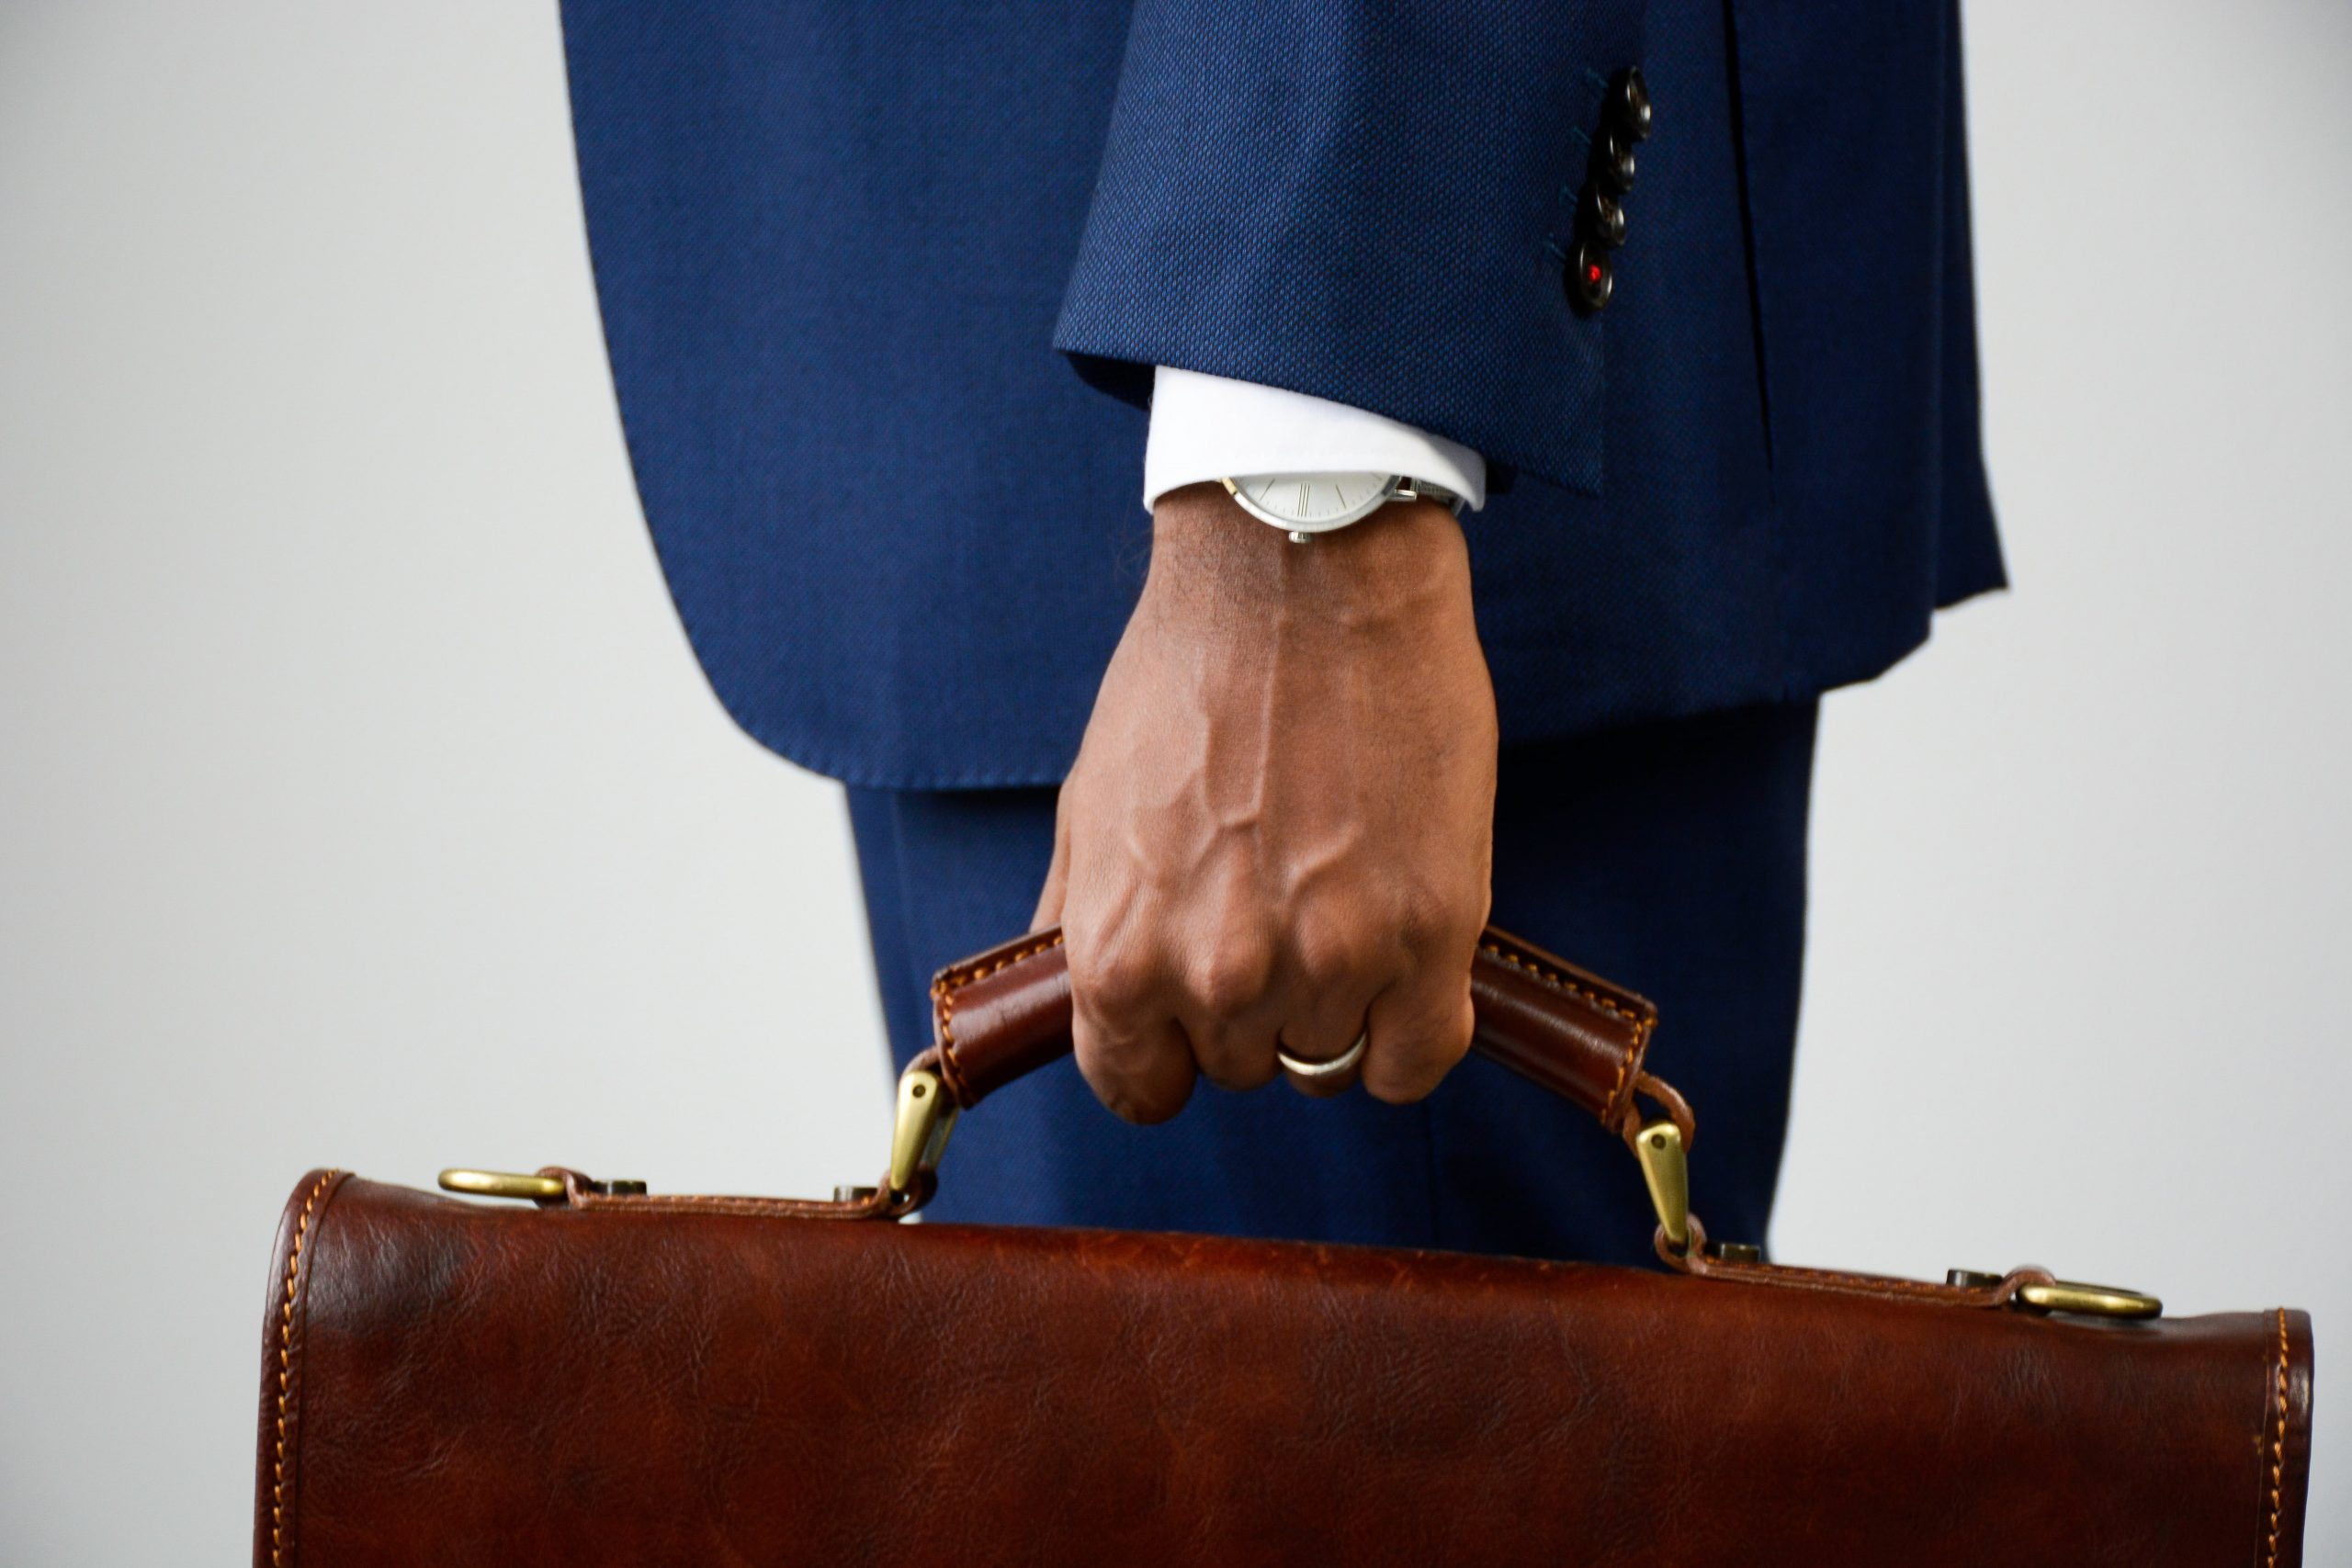 close-up-of-stylish-young-businessman-in-blue-form-PRJPREG-min